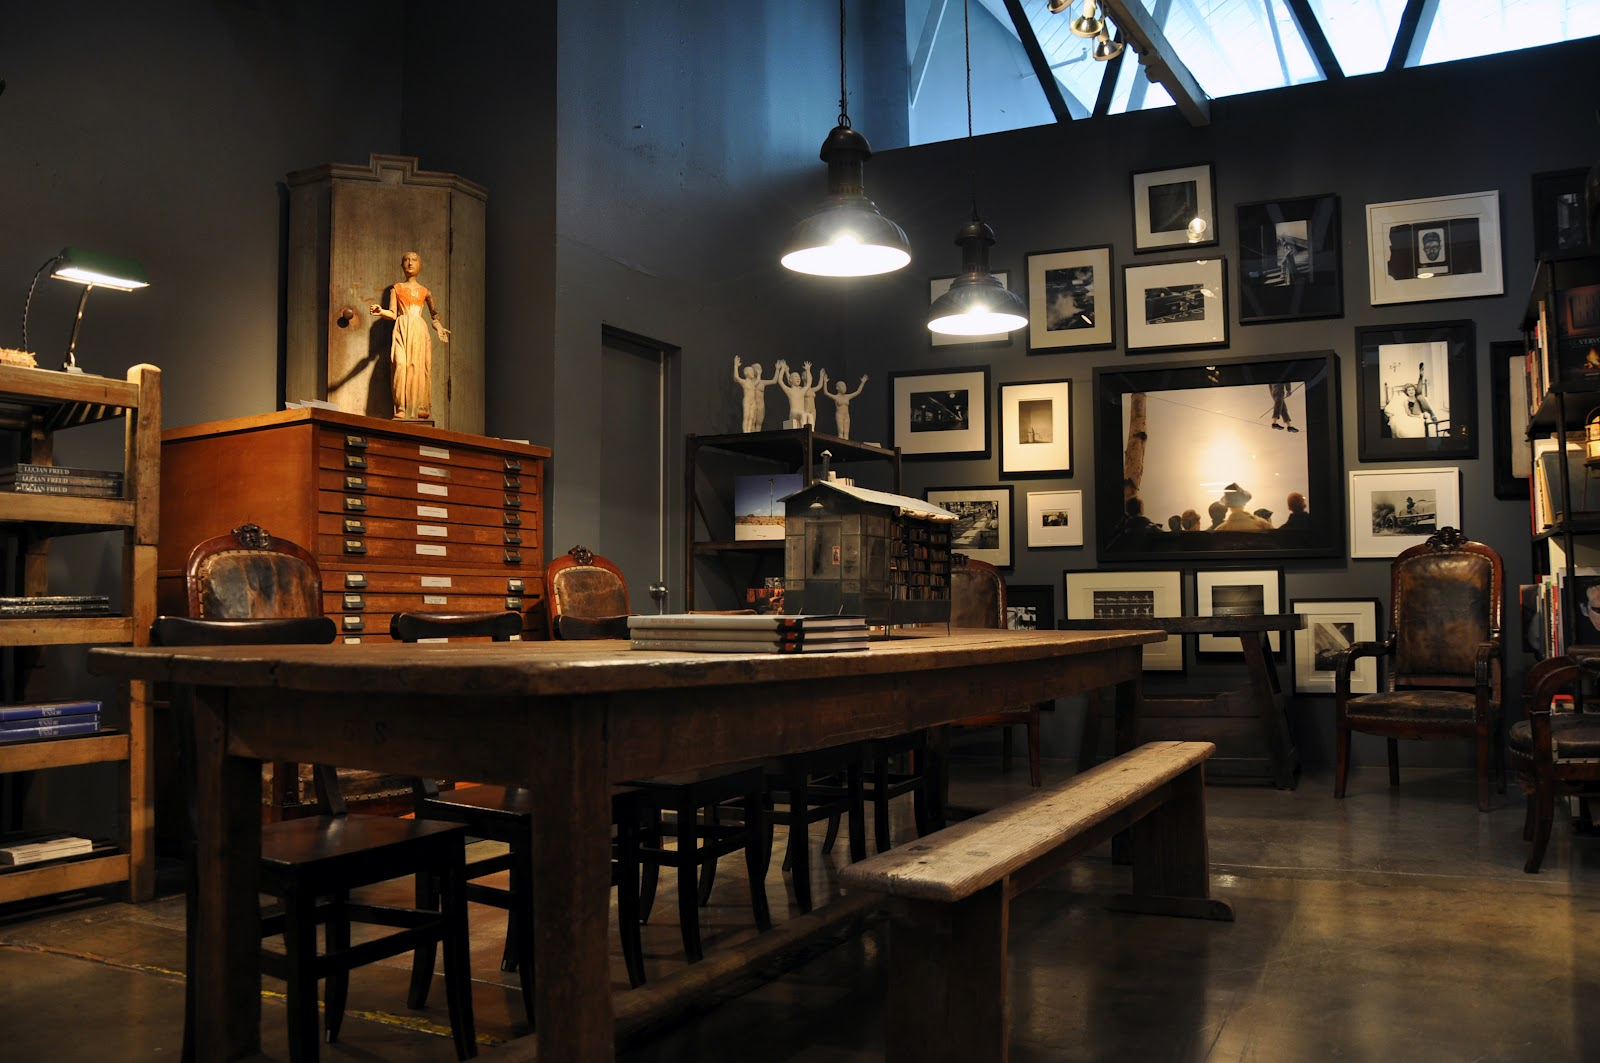 Eclectic-Dining-Room-with-Industrial-Iron-Pendant-Lightings-over-Table